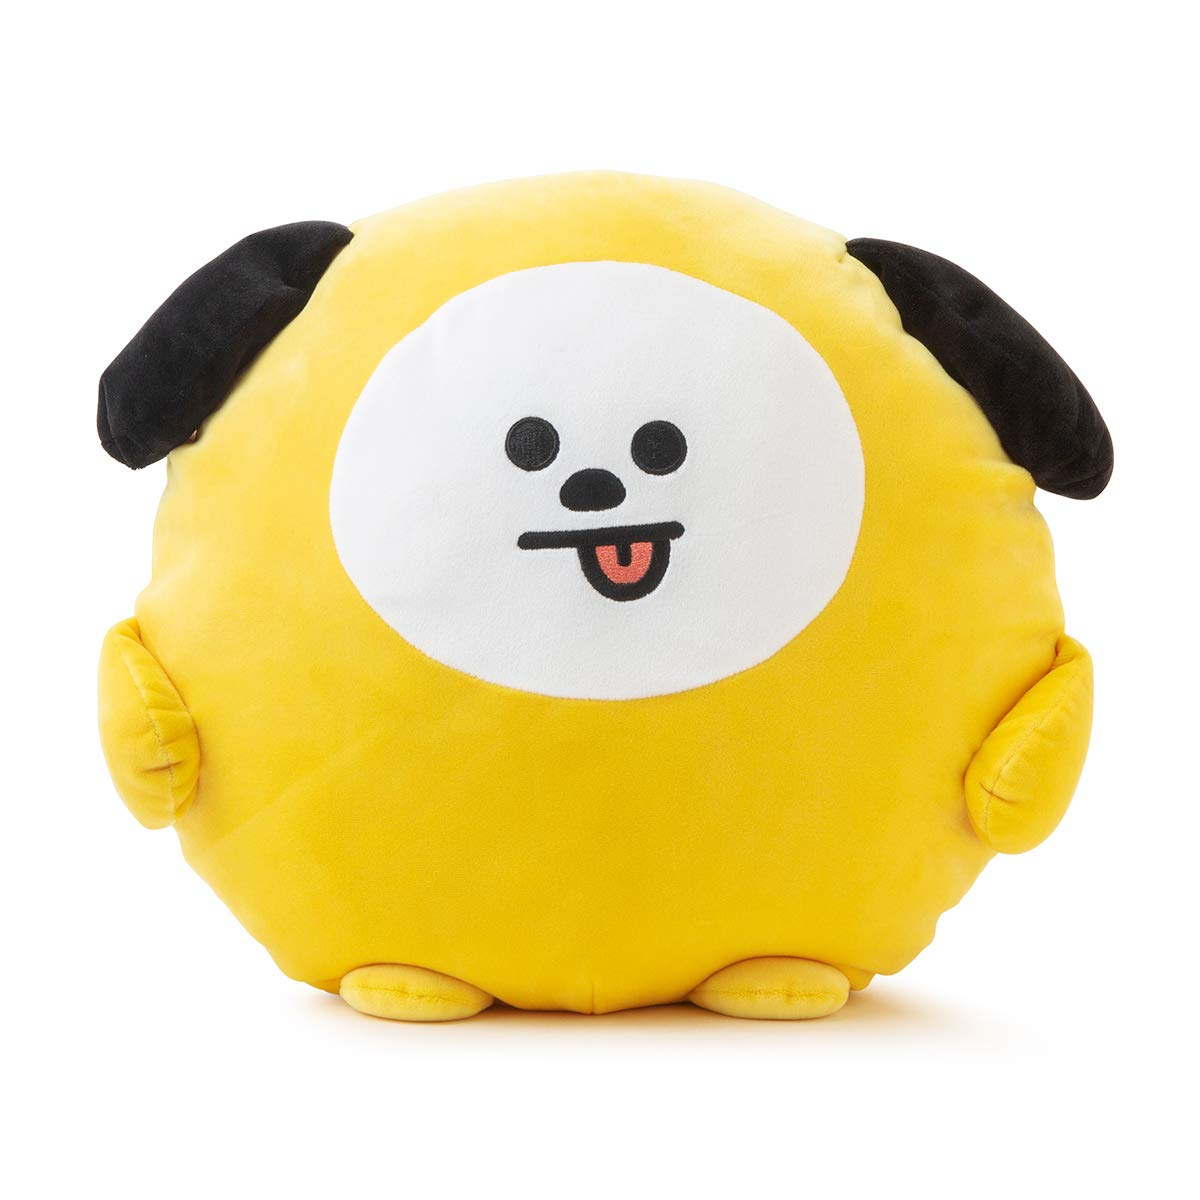 BT21 Official Merchandise by Line Friends - CHIMMY Character Pong Pong Cushion 11.8 Inches by BT21